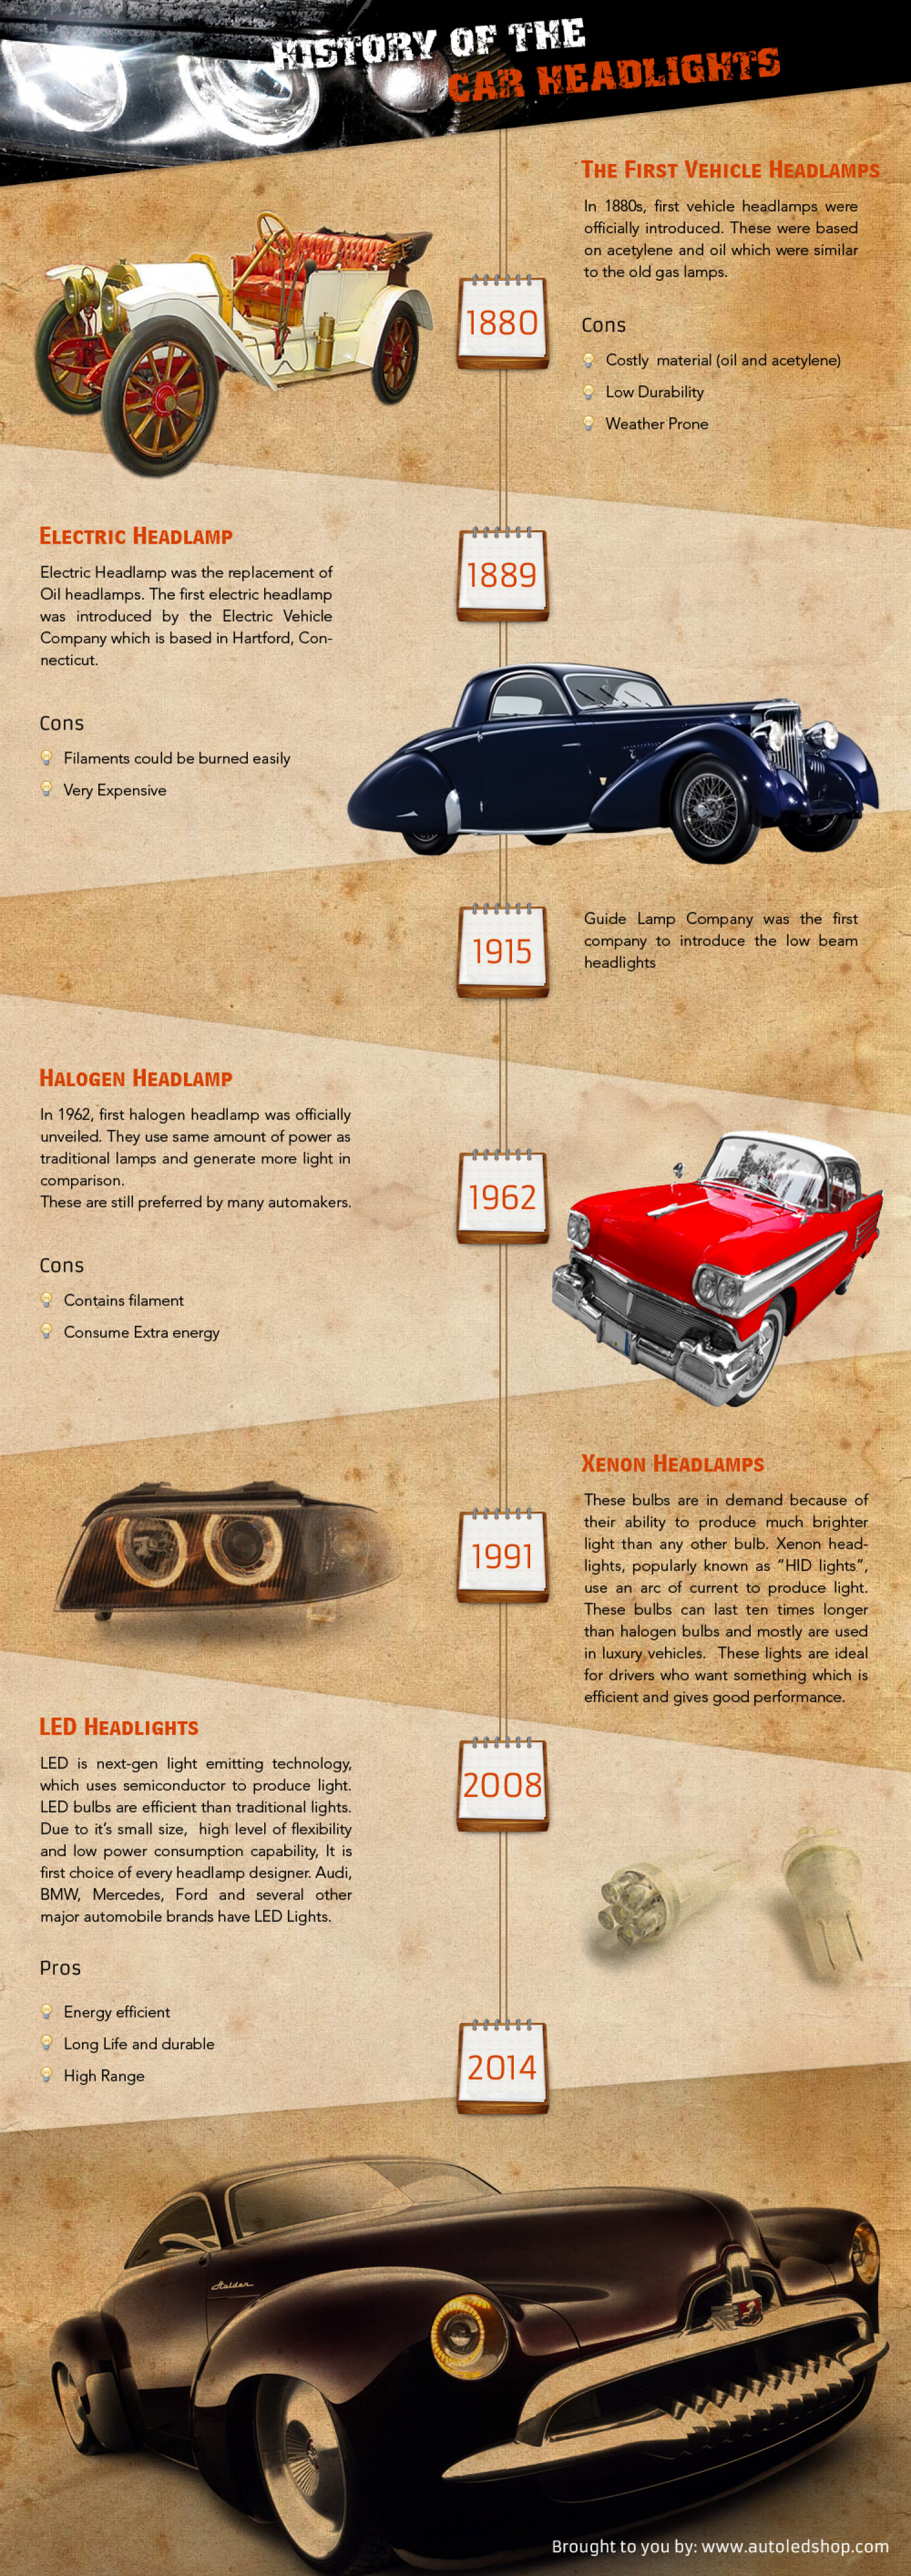 History of the Car Headlights Infographic